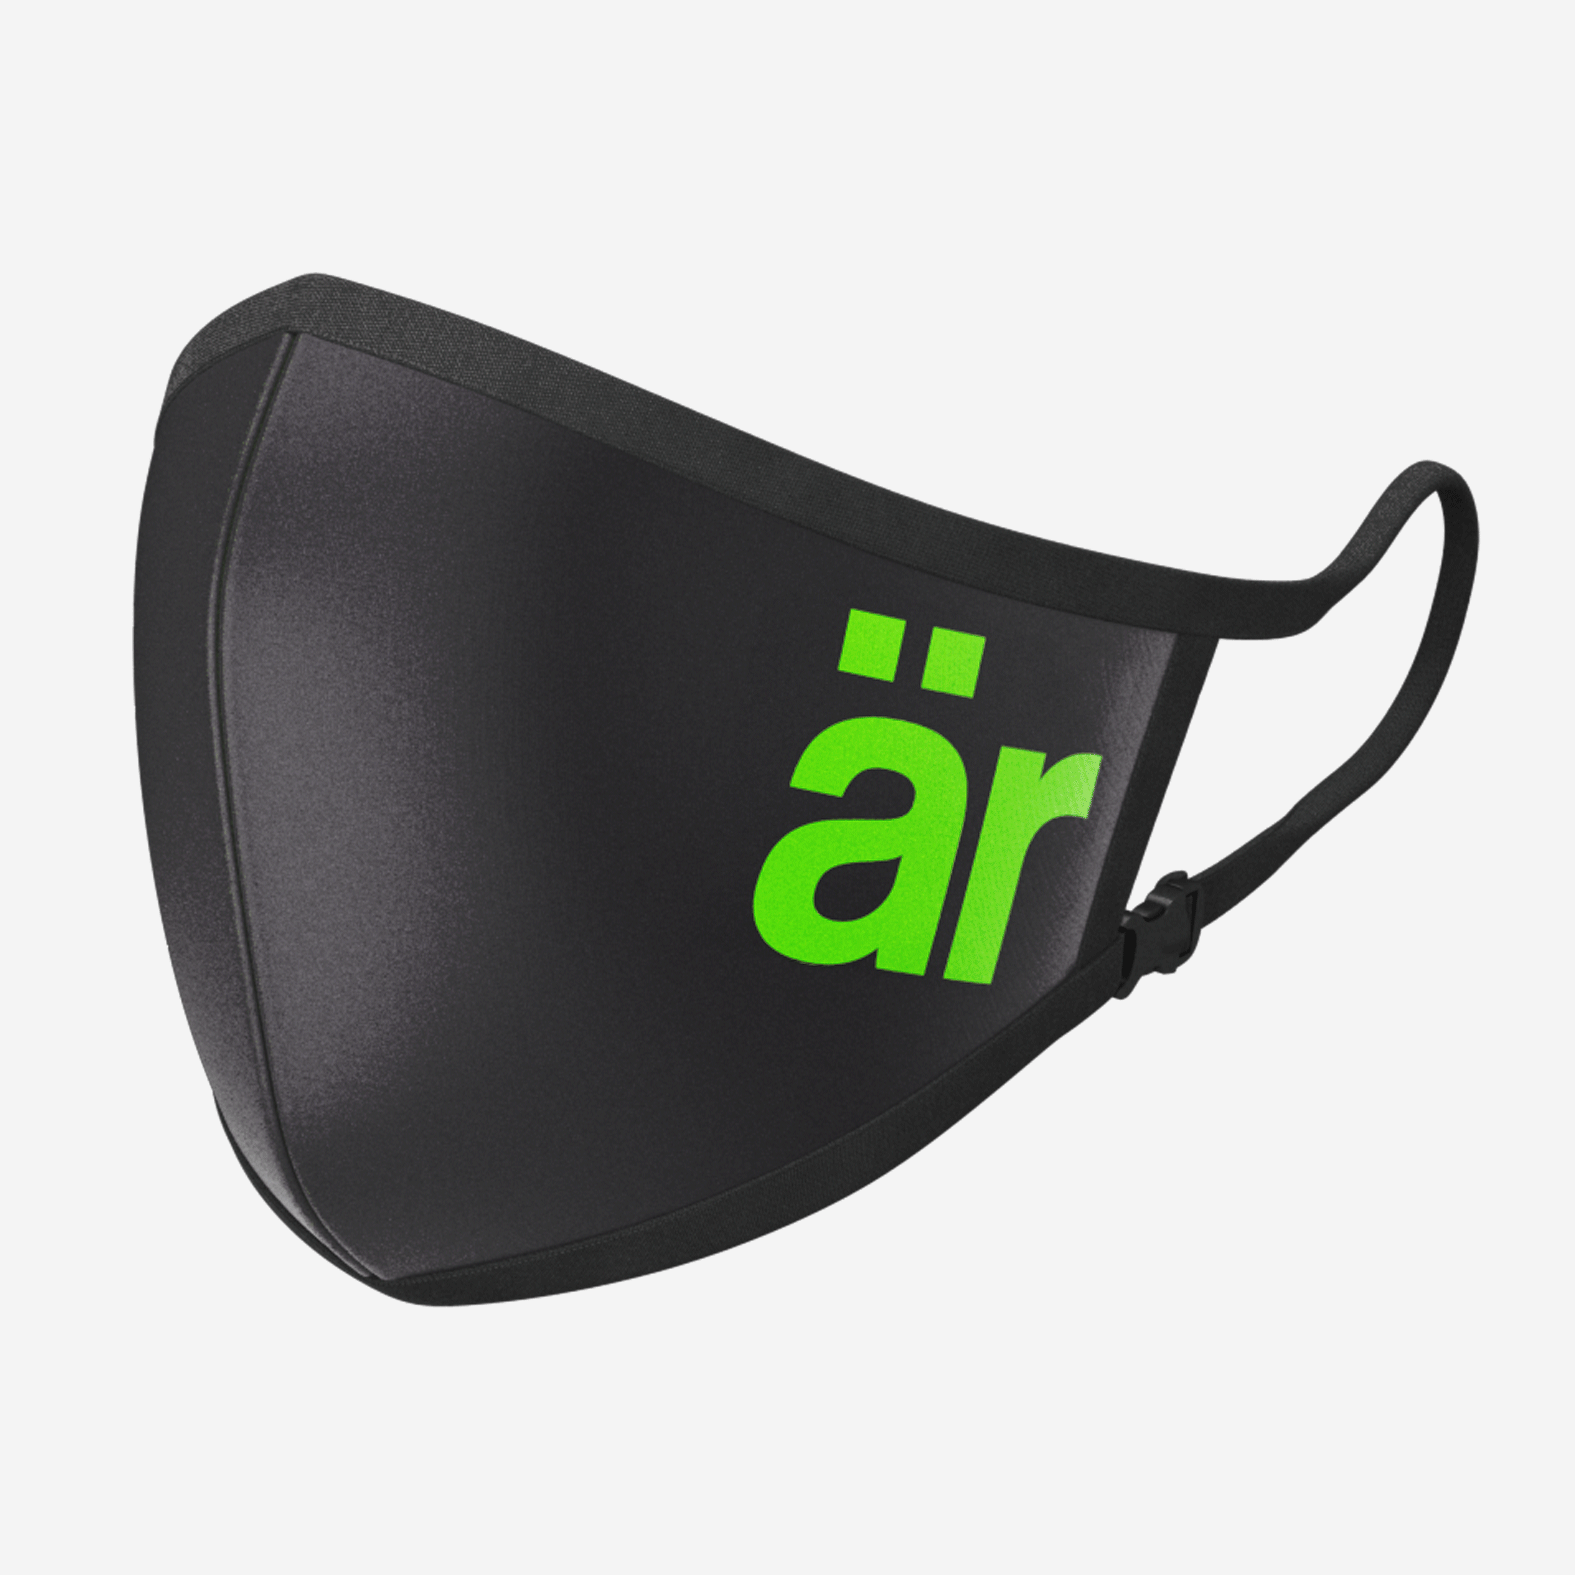 Self-cleaning Face Mask with Nanofilter �r Big logo Neon Green